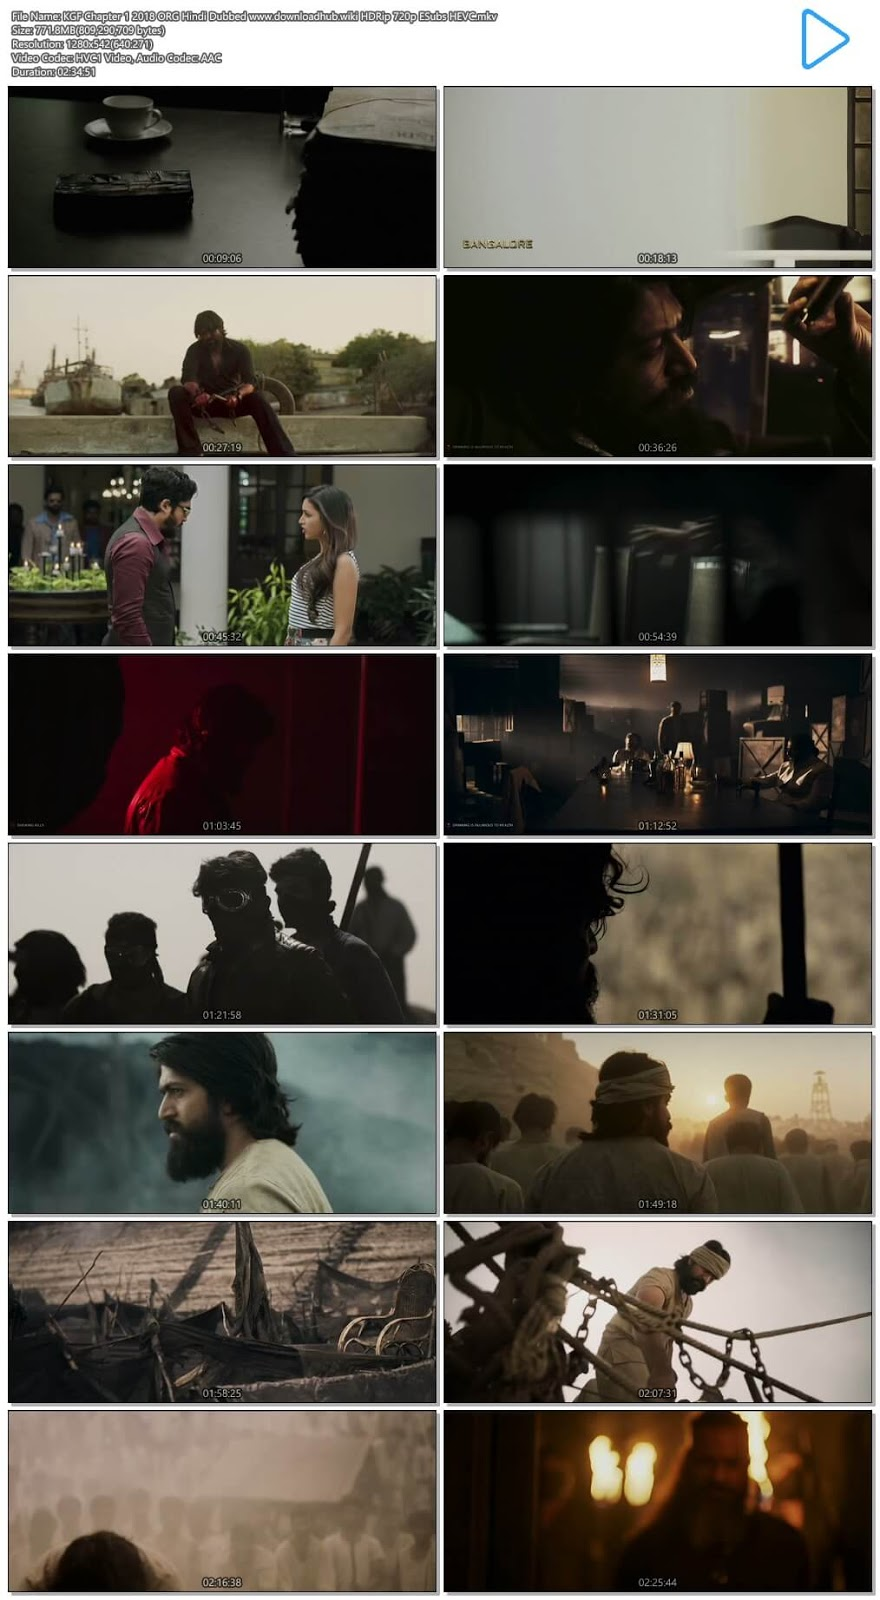 KGF FULL MOVIE DOWNLOAD IN HINDI CHAPTER 1 - MOVIES CINEMAXX 24